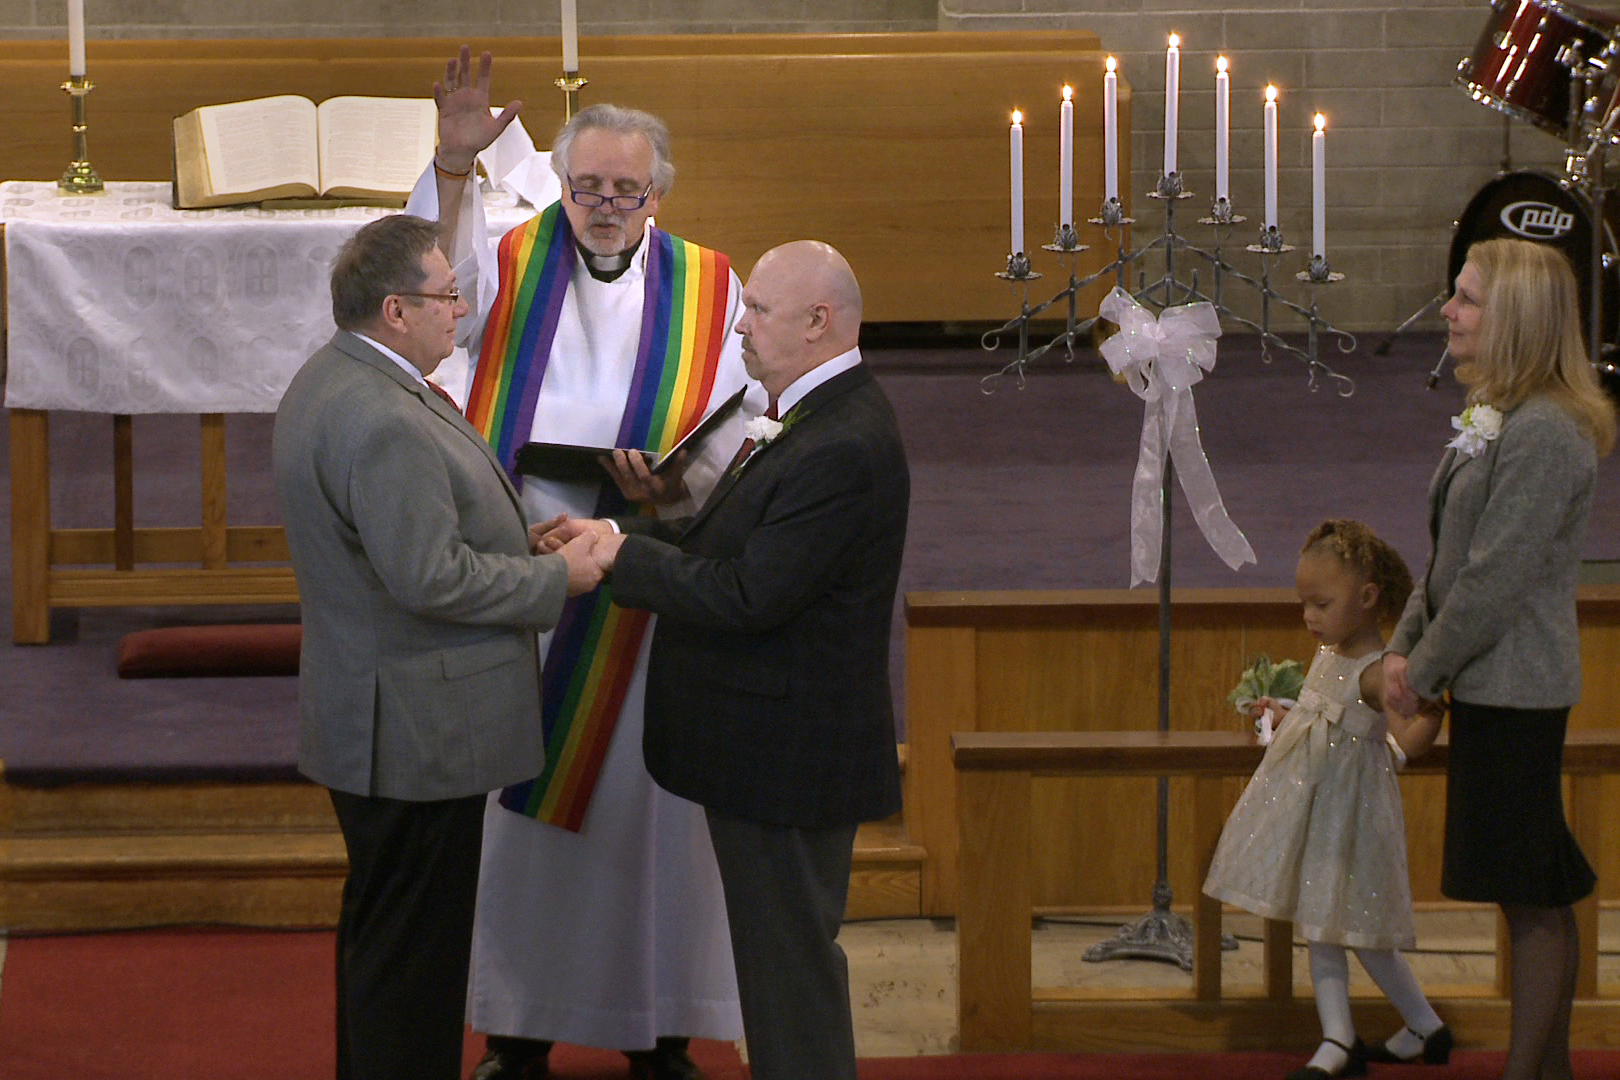 Lutheran Church Wedding Policy To Include Same